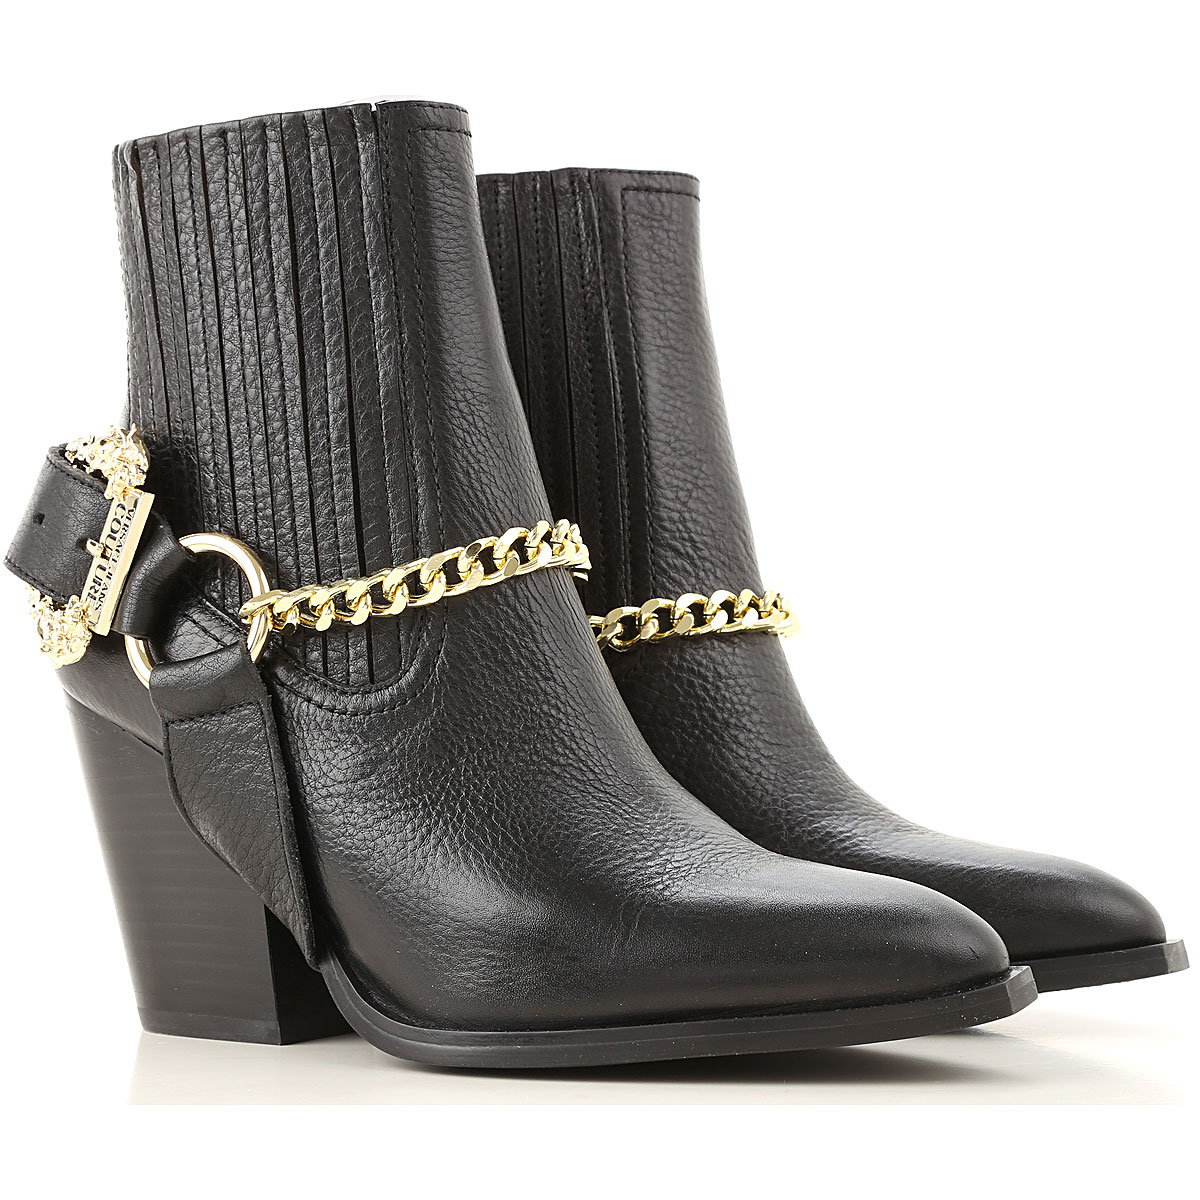 Versace Jeans Couture Boots for Women, Booties On Sale, Black, Leather, 2019, 5.5 6 6.5 7 8 8.5 9